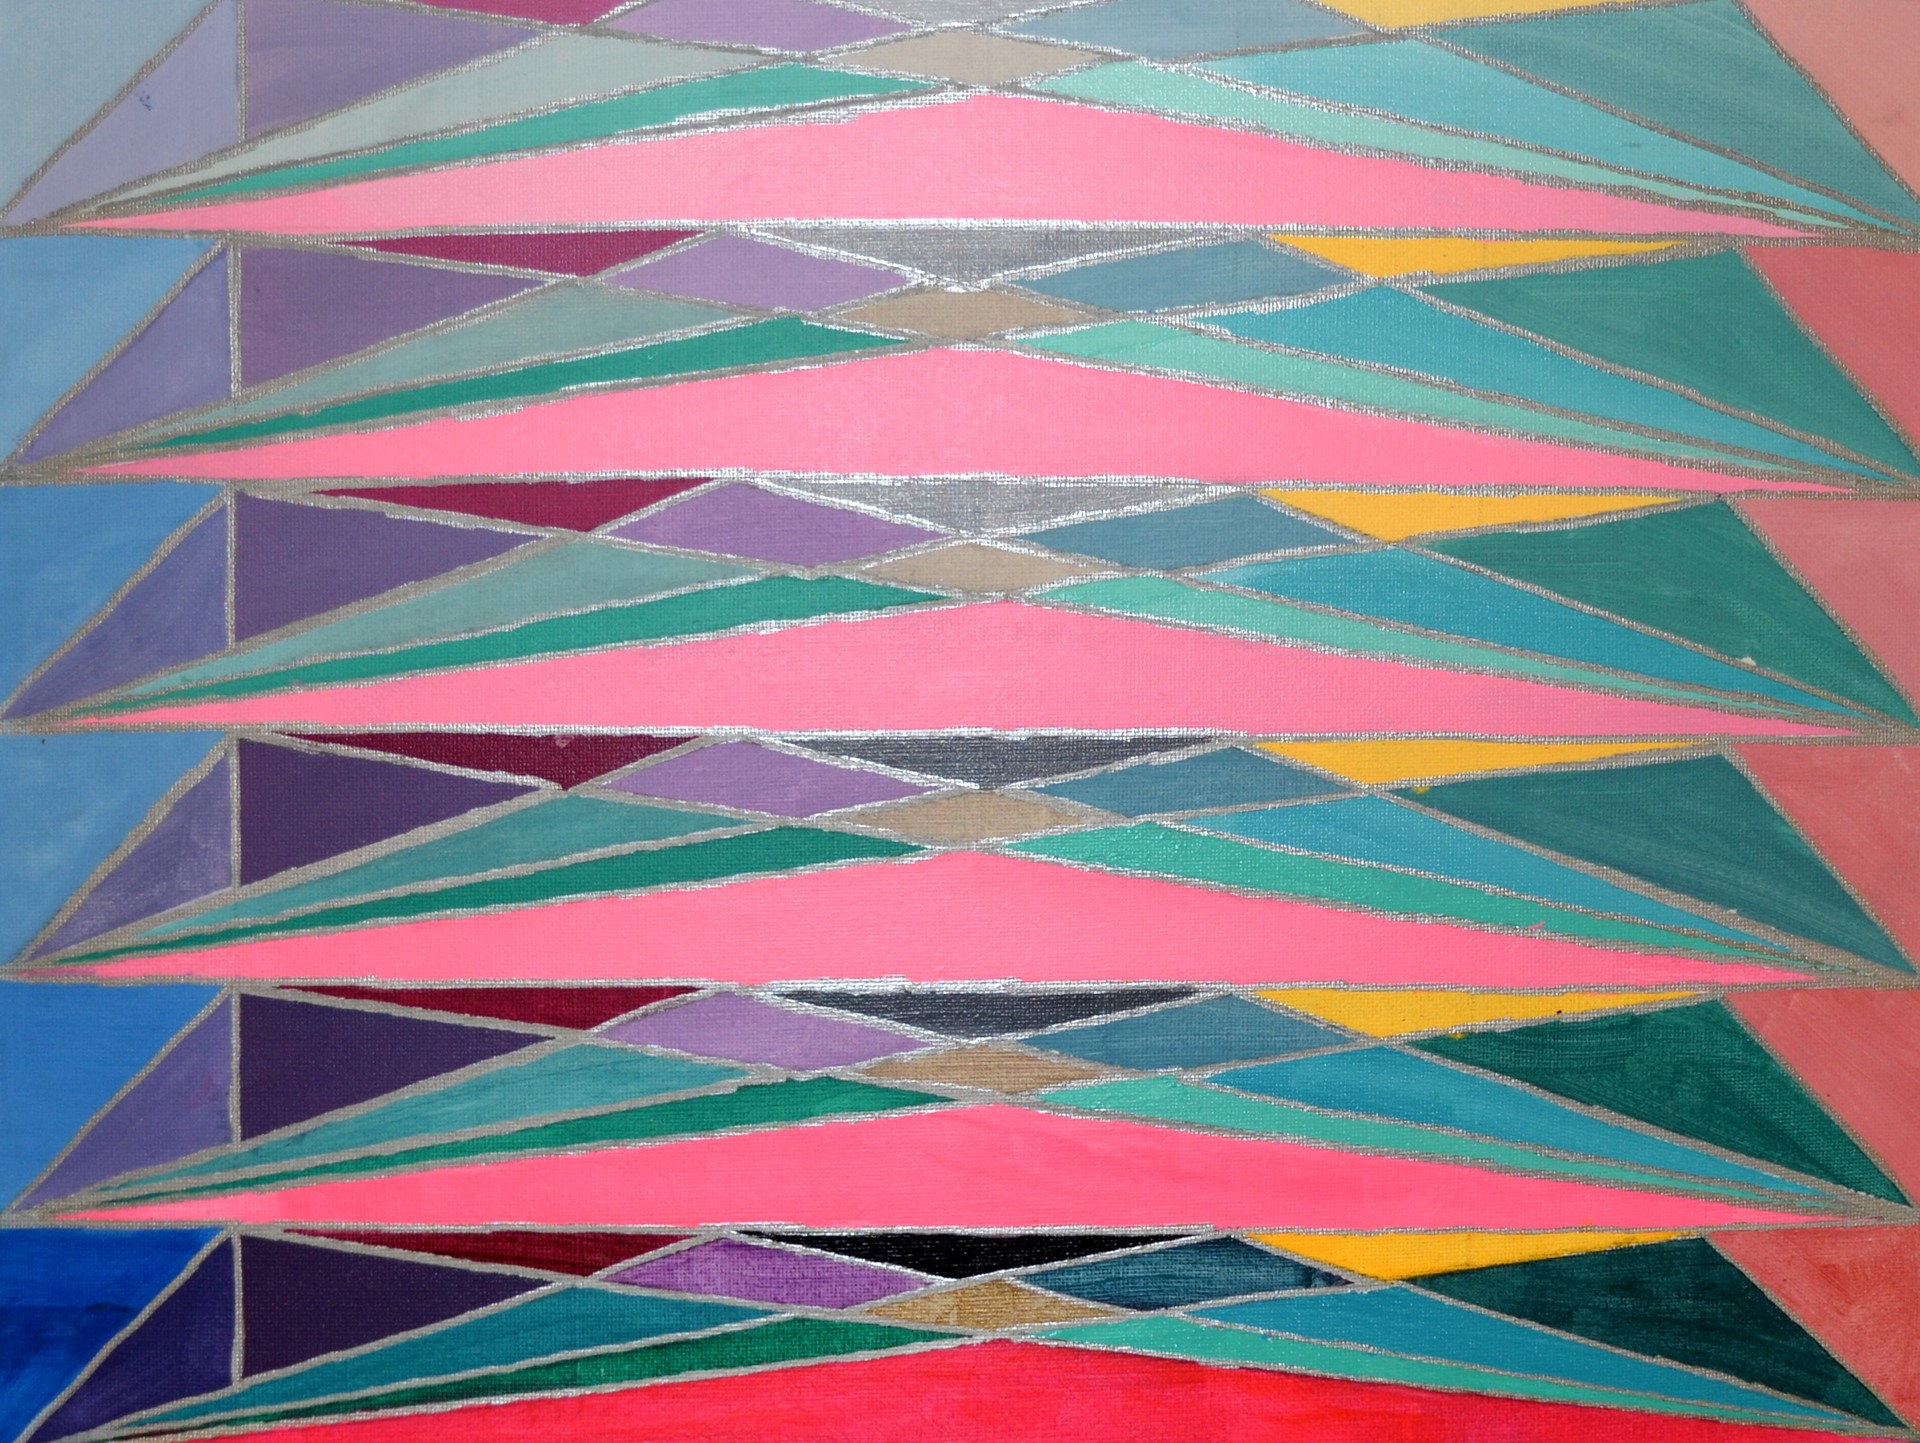 Dakota Cotton, Triangular Triangles, acrylic on canvas board 12 x 16, 2016